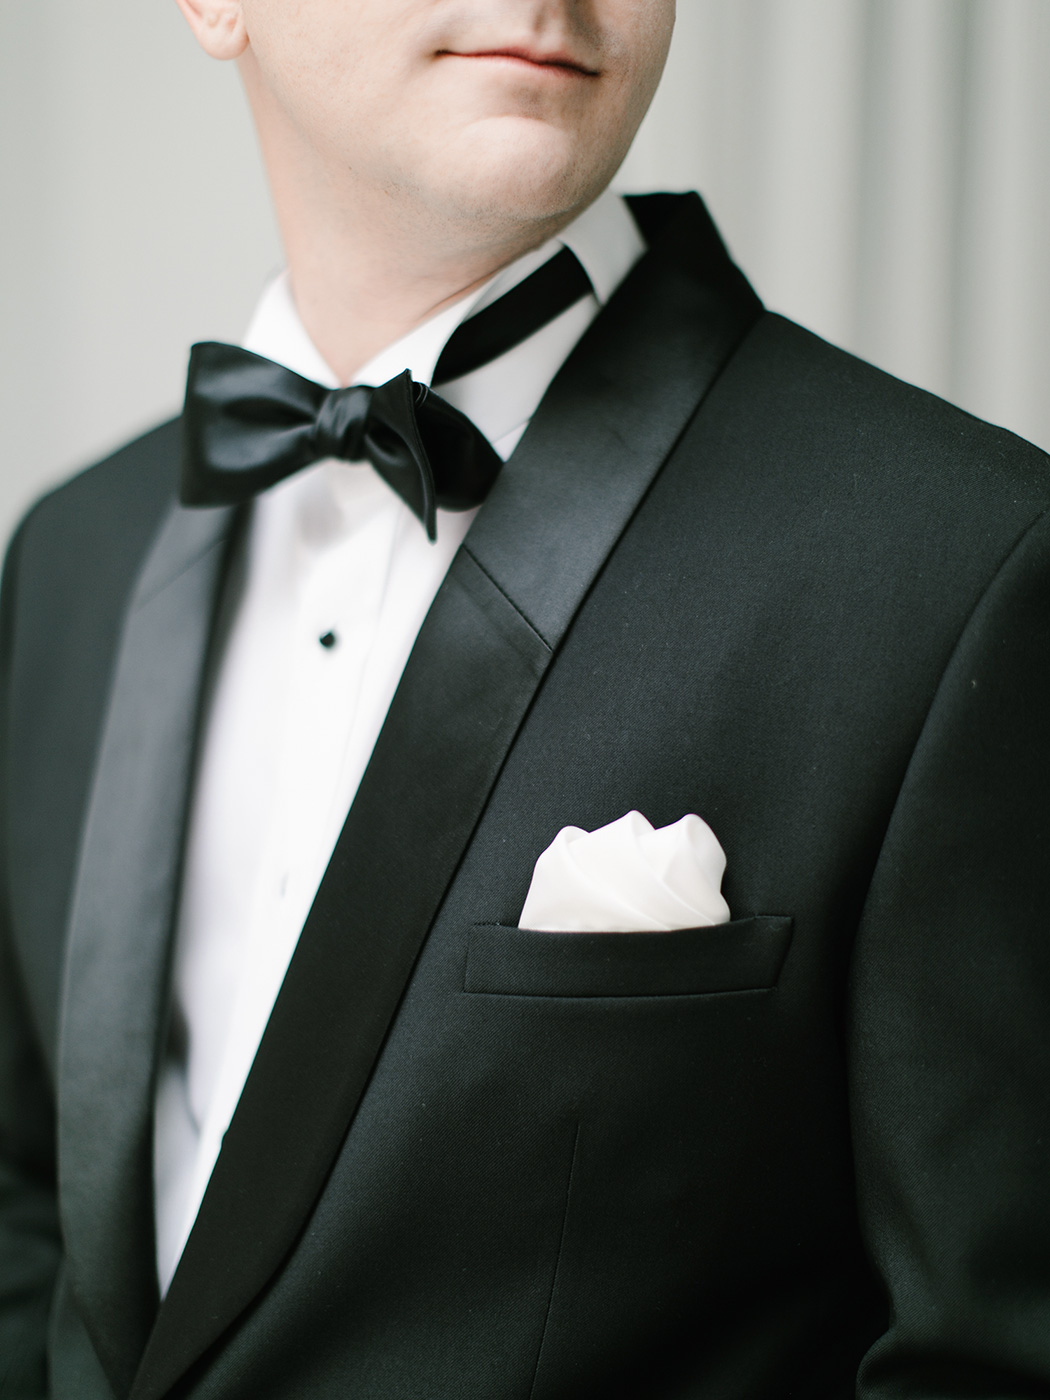 Black Tie | Rensche Mari Photography